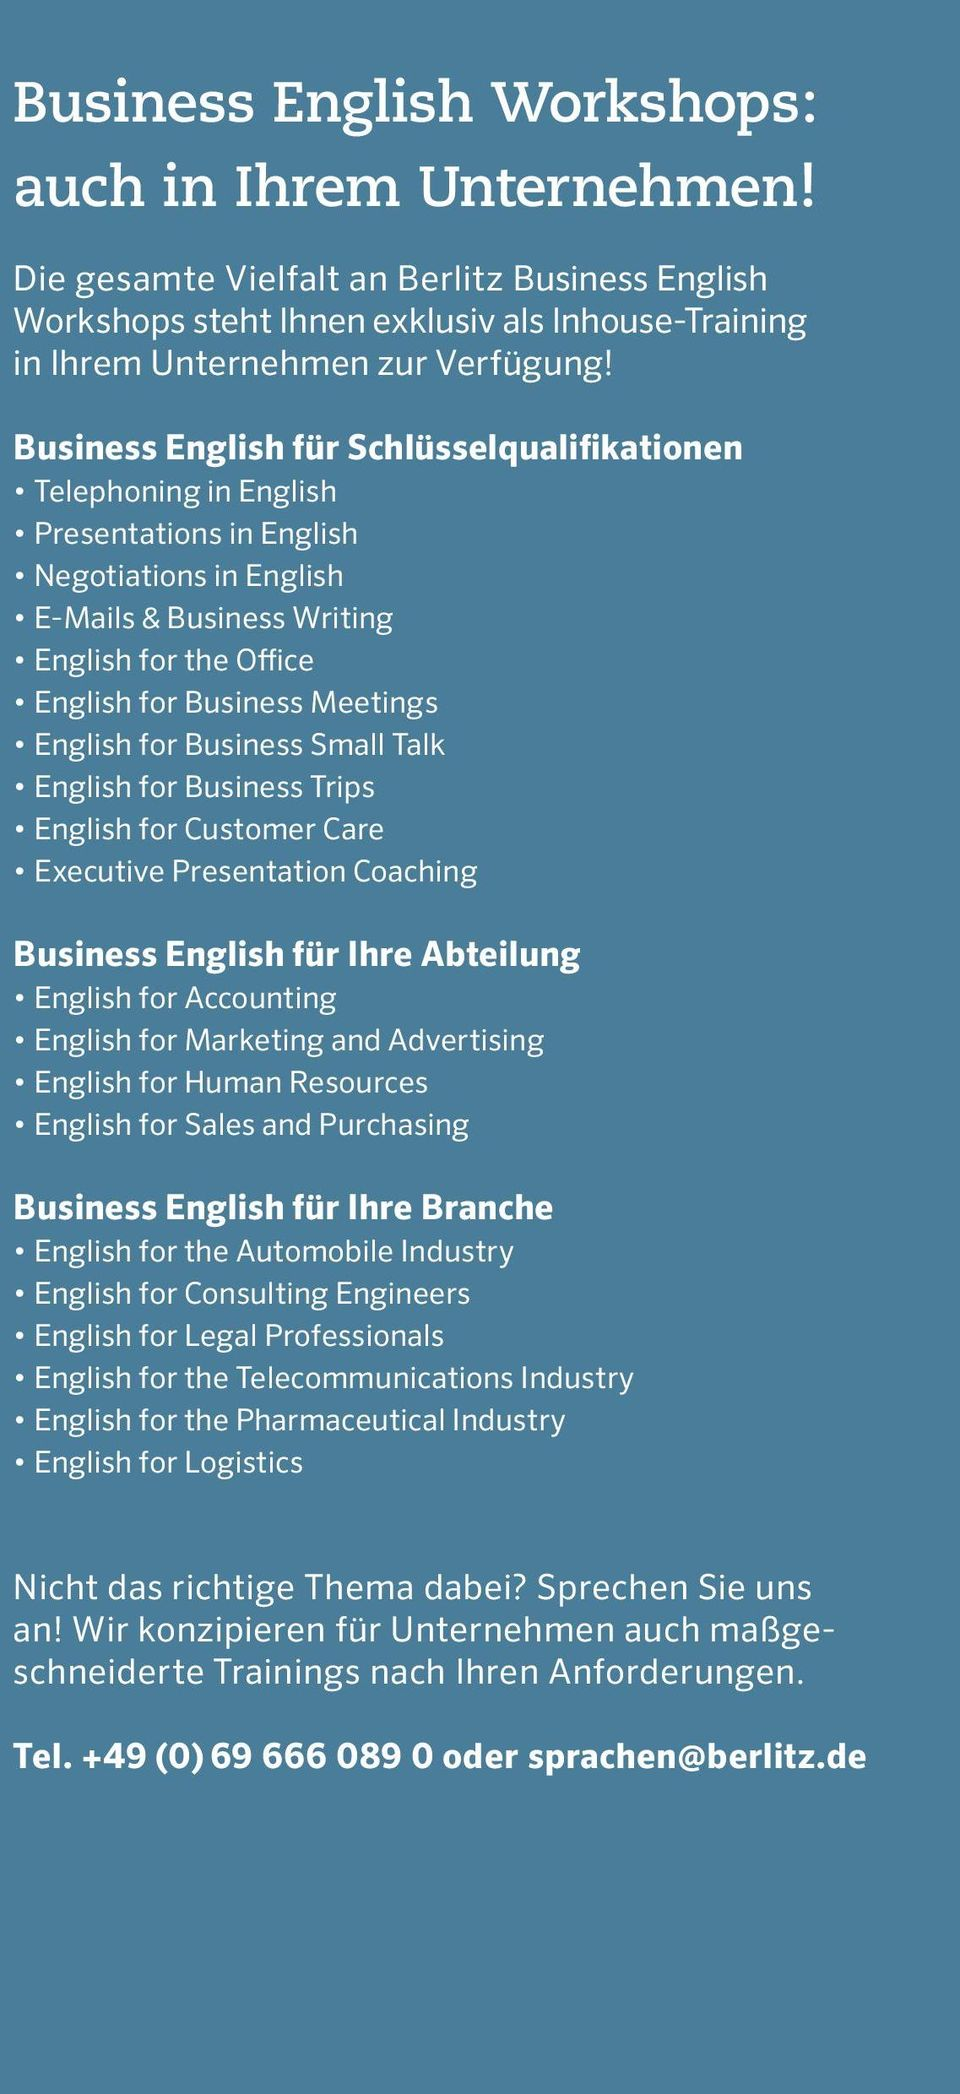 English for Business Small Talk English for Business Trips English for Customer Care Executive Presentation Coaching Business English für Ihre Abteilung English for Accounting English for Marketing